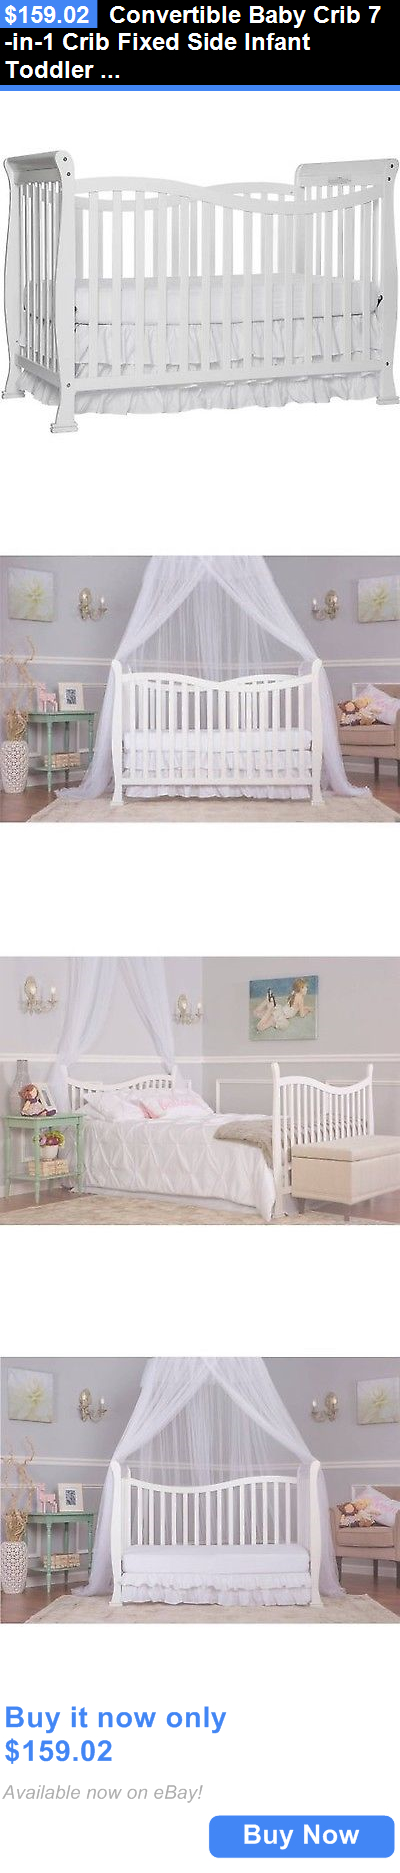 Baby Nursery: Convertible Baby Crib 7-In-1 Crib Fixed Side Infant Toddler Matrass Nursery Bed BUY IT NOW ONLY: $159.02